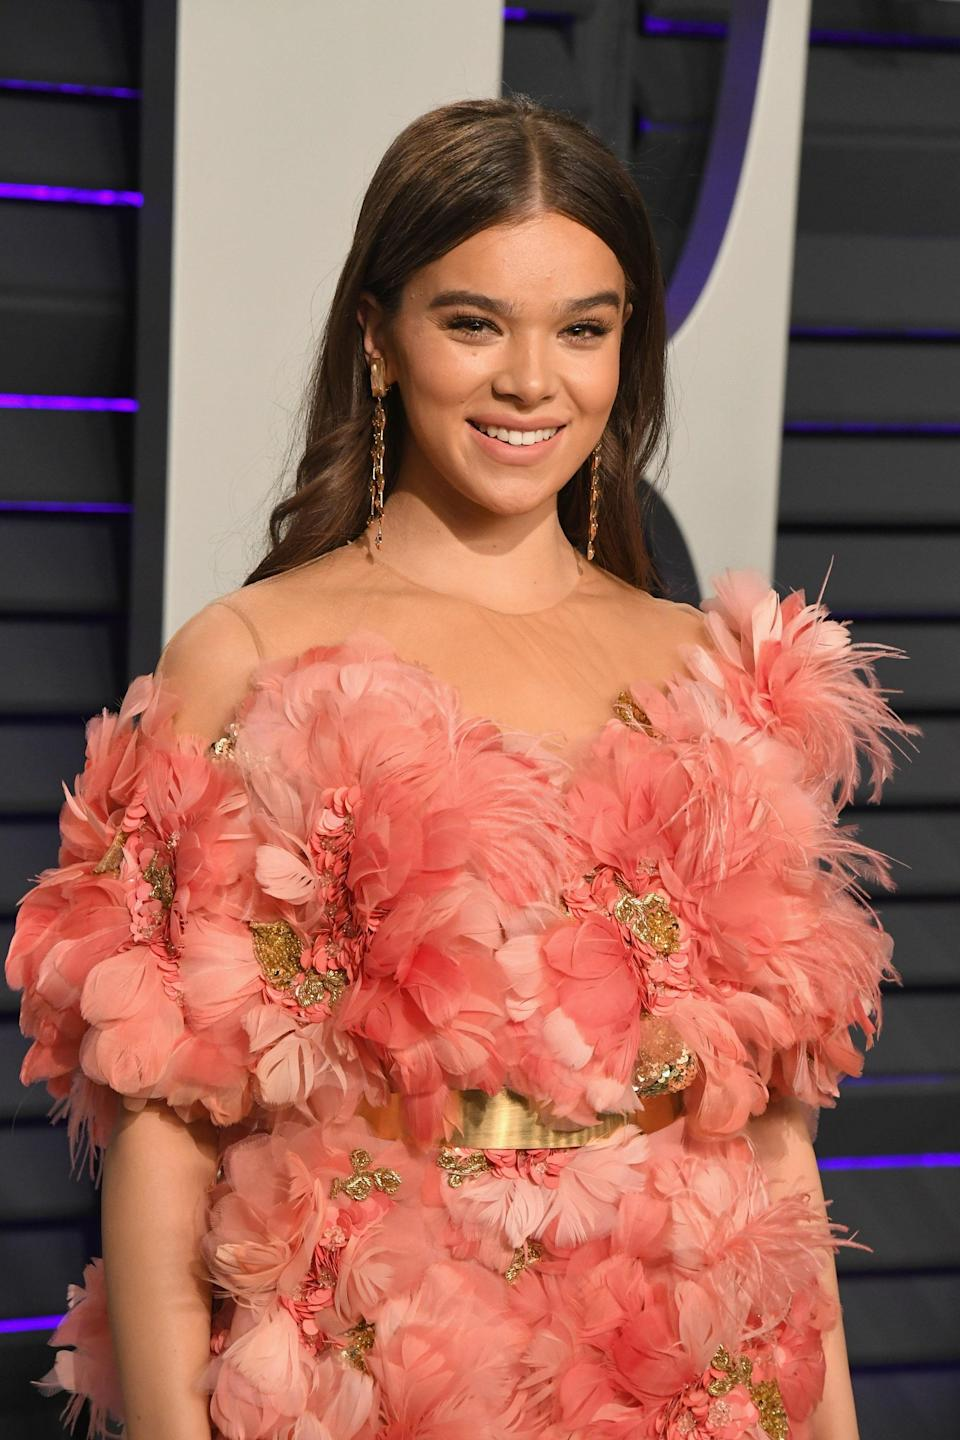 """The part-Filipina actress/singer first made headlines for her role in the 2010 film <em>True Grit</em> — which earned her an Oscar nomination. NBD. She later went on to star in <em>Romeo & Juliet</em>, the <em>Pitch Perfect</em> film series, and <em>The Edge of Seventeen</em>. With all of her film roles, she even had time to release her debut EP <em>Haiz</em>, featuring the summer banger """"Love Myself."""" Most recently, she was in <em>Bumblebee</em>, the latest installment of the <em>Transformers</em> film franchise."""